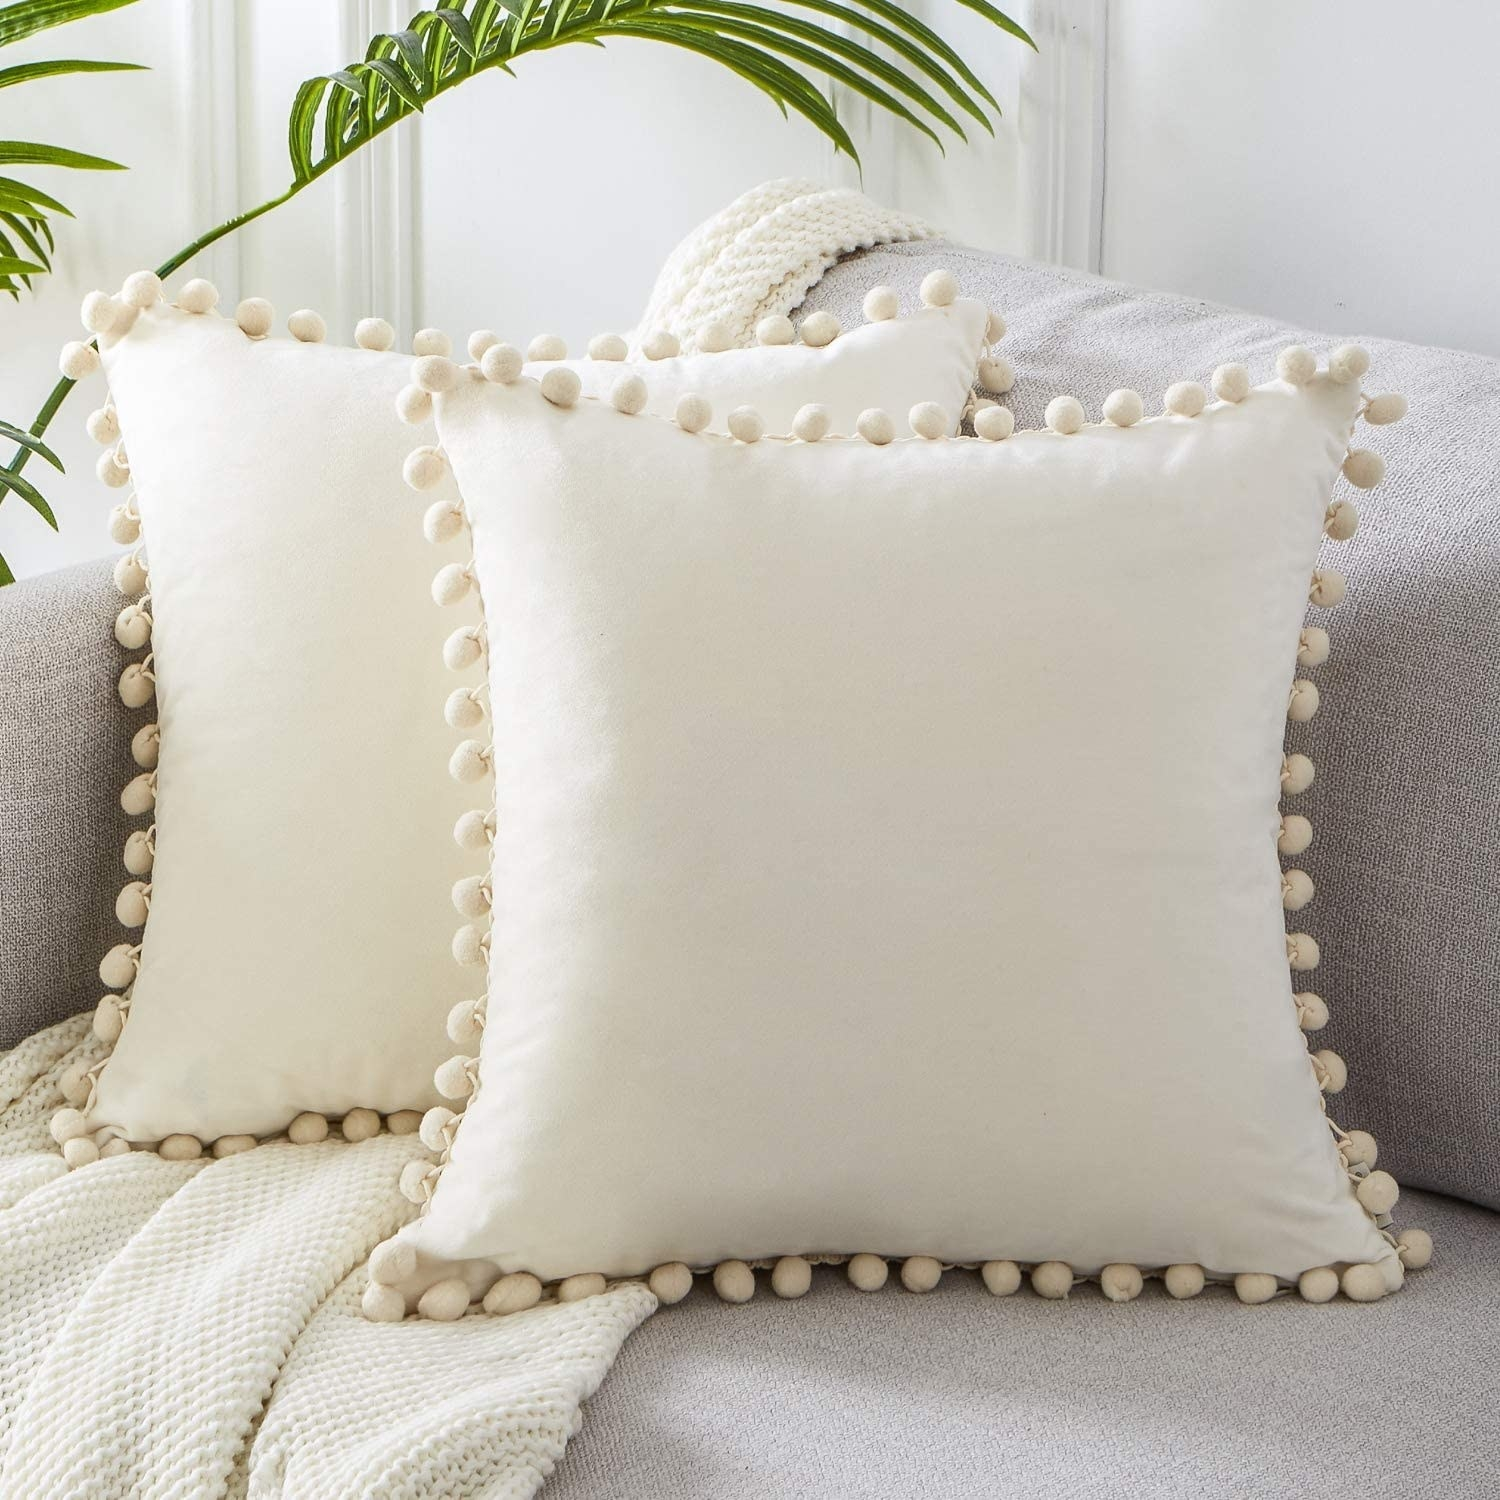 Two cream colored throw pillows with pom pom borders